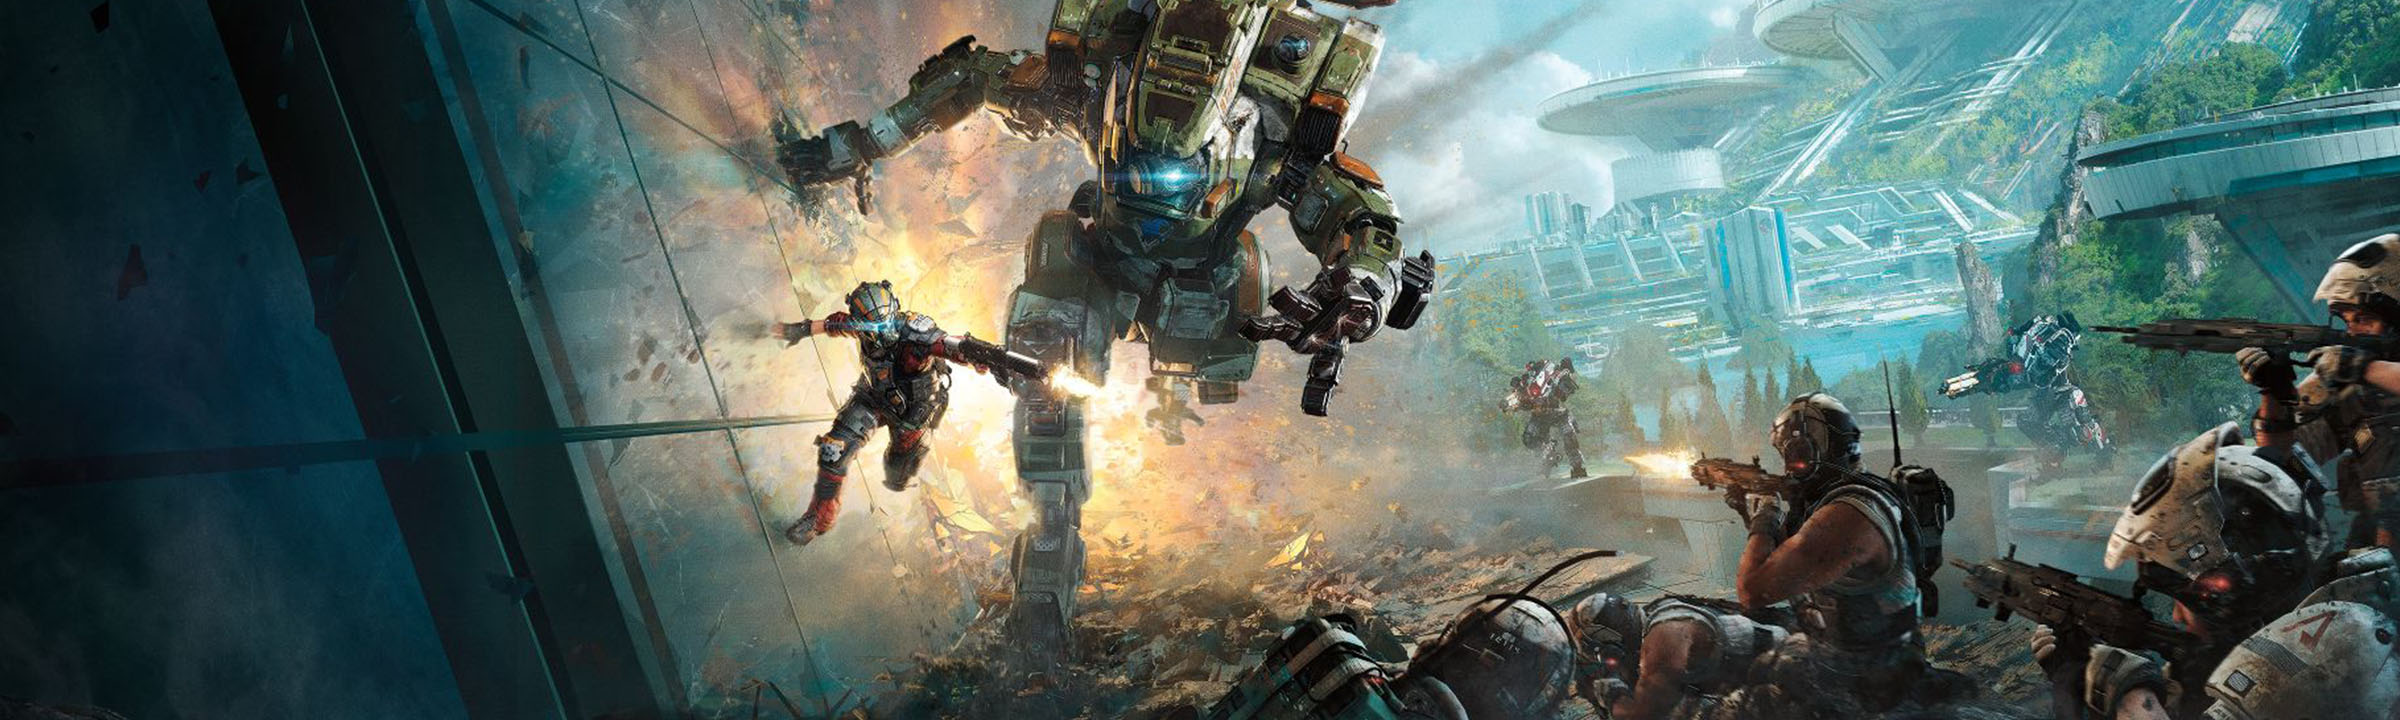 Titanfall 2 Campaign Live Gameplay